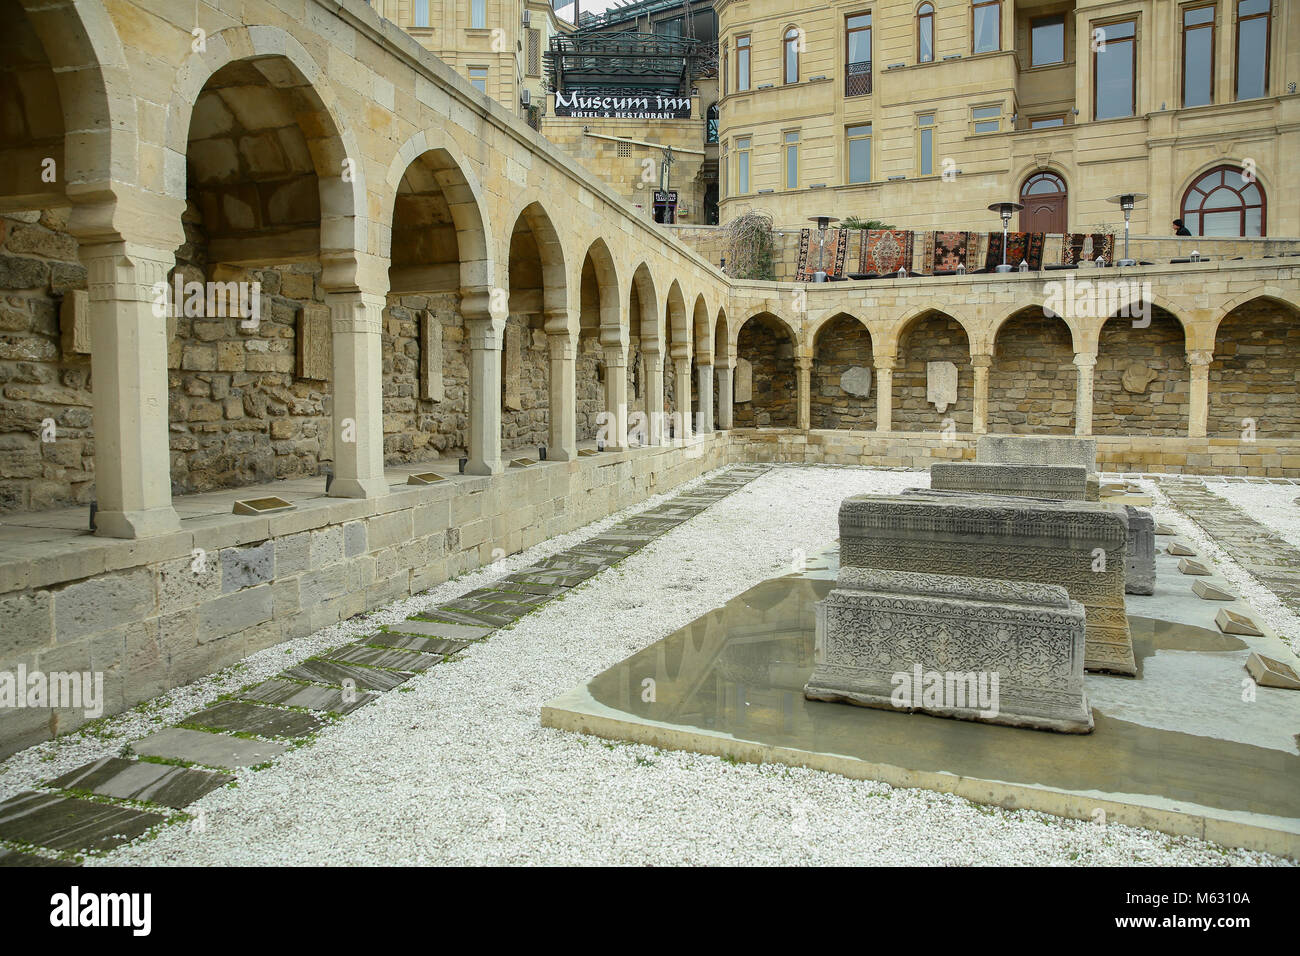 Arcades and religious burial Place in Old city, Icheri Sheher - UNESCO World Heritage Site - Stock Image